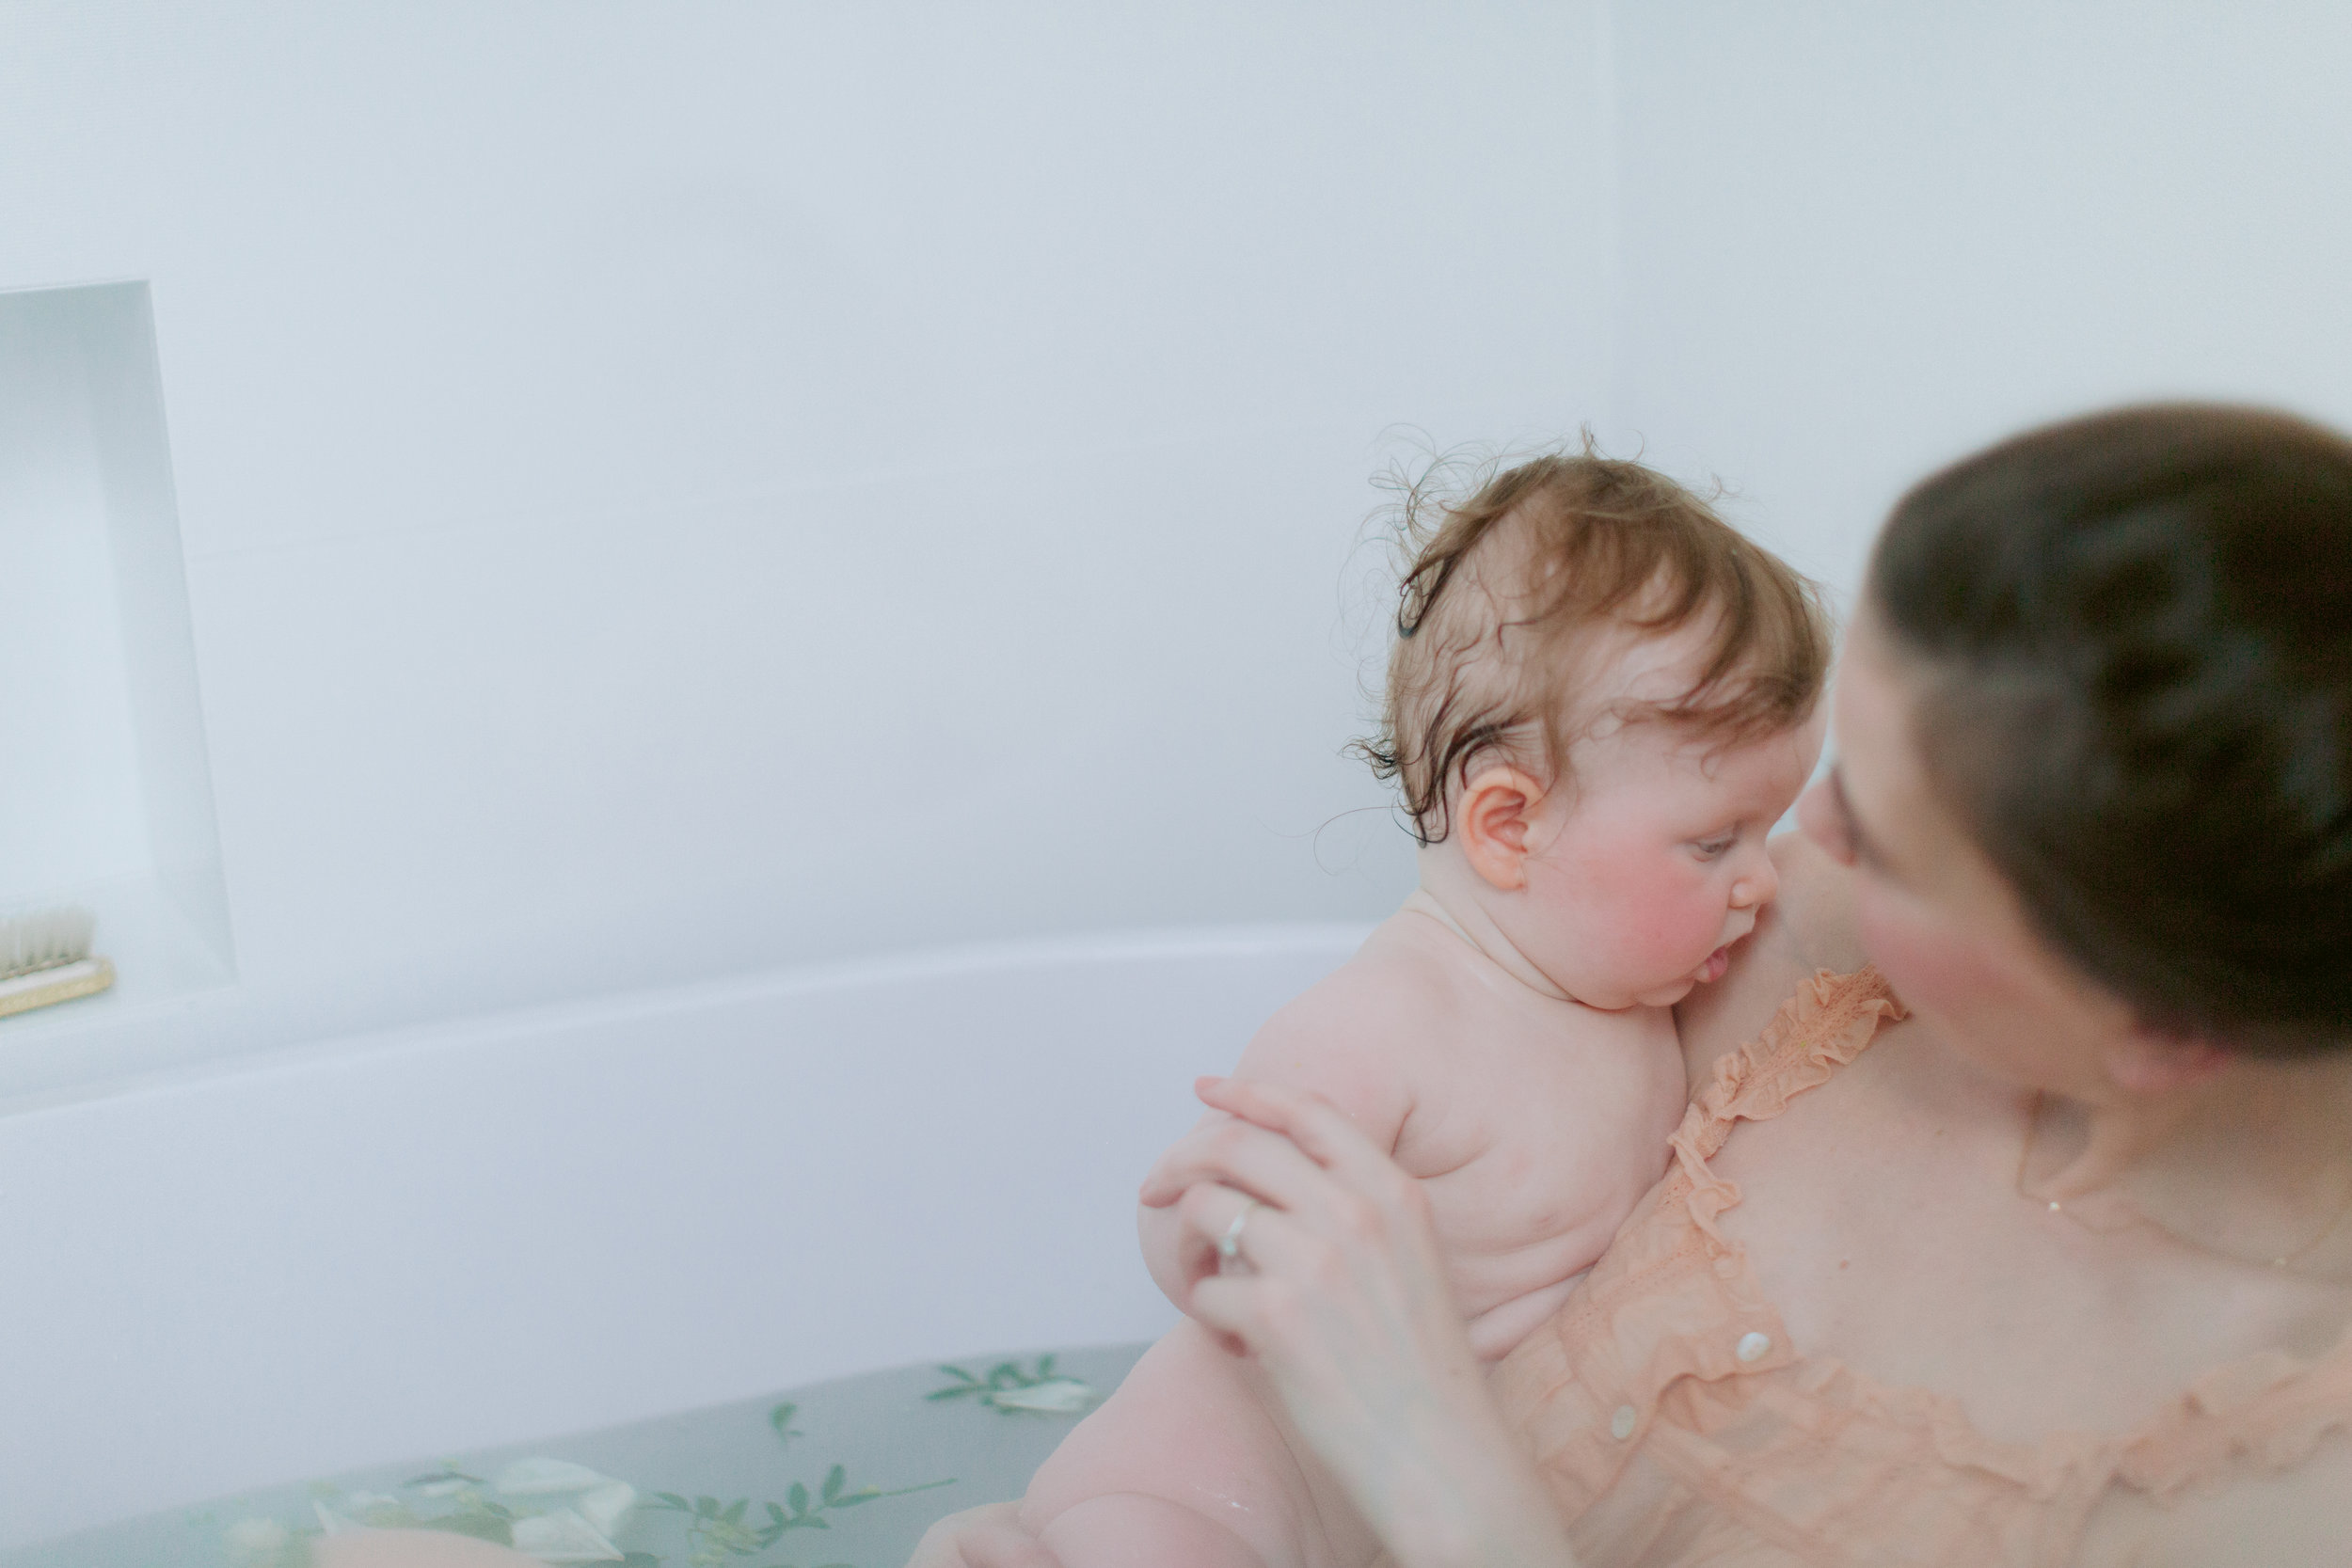 Ernesta & Liepa_Motherhood photo session_Bath_London Liefestyle Photogrqapher_Joana Senkute Photography